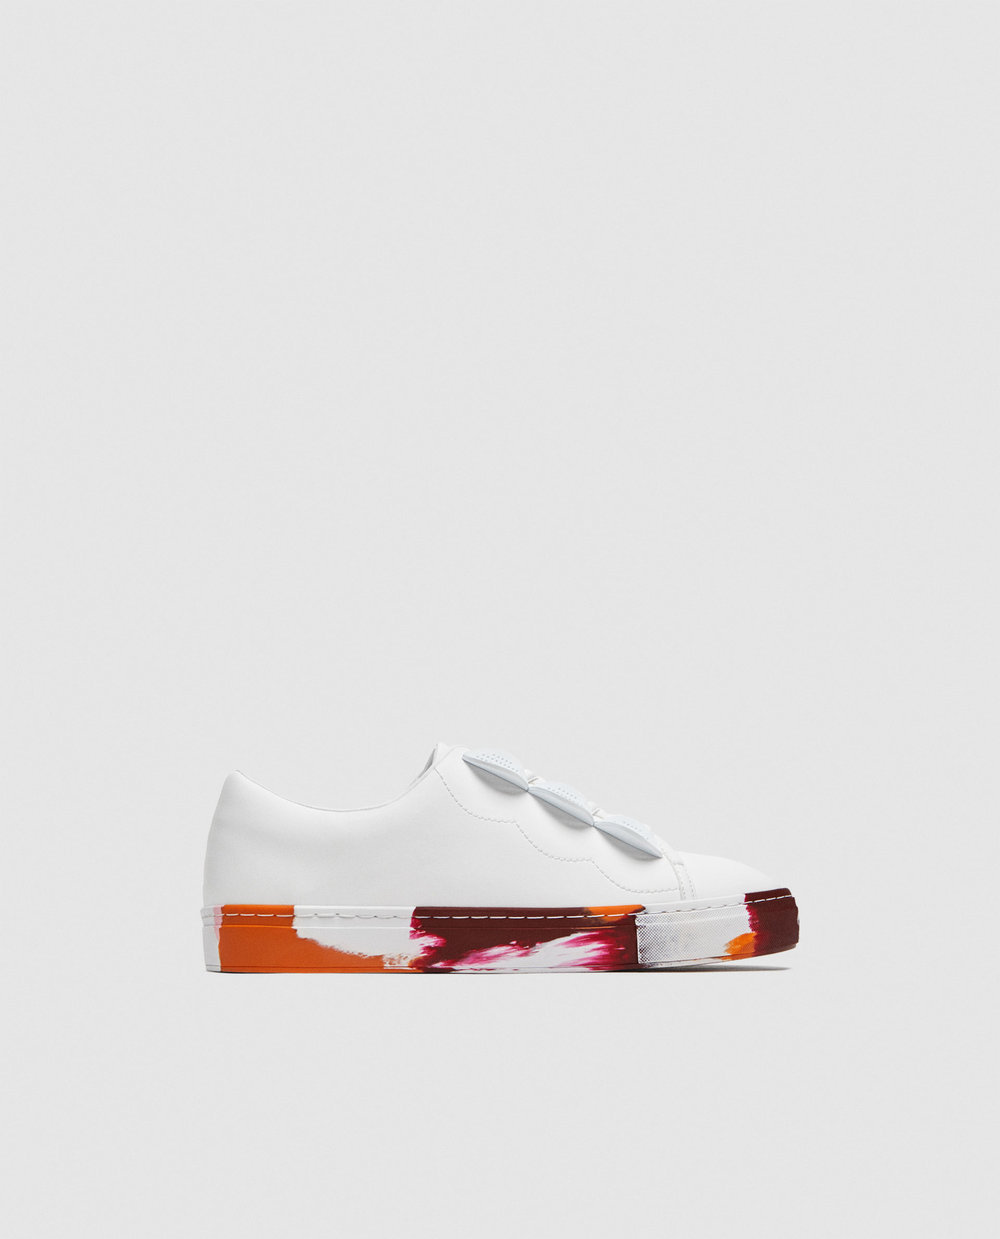 zara-coloured-sole-sneakers.jpg